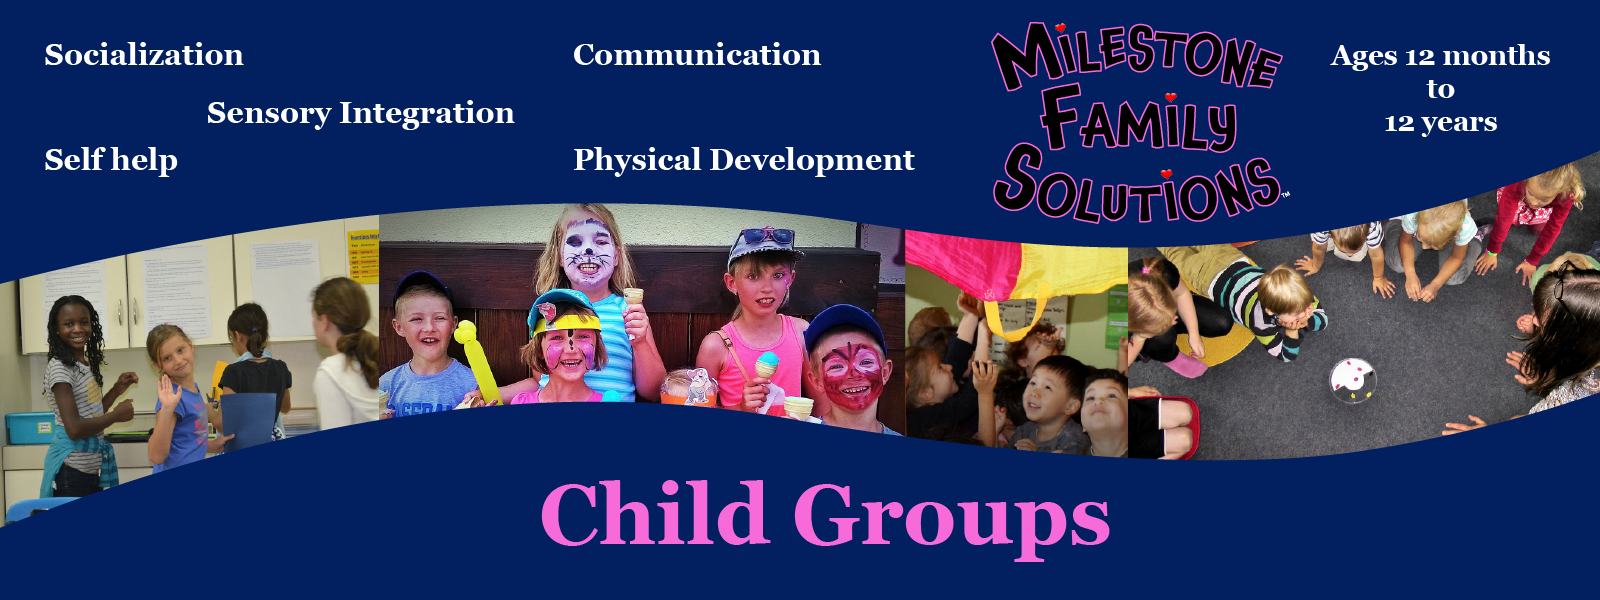 Child groups header